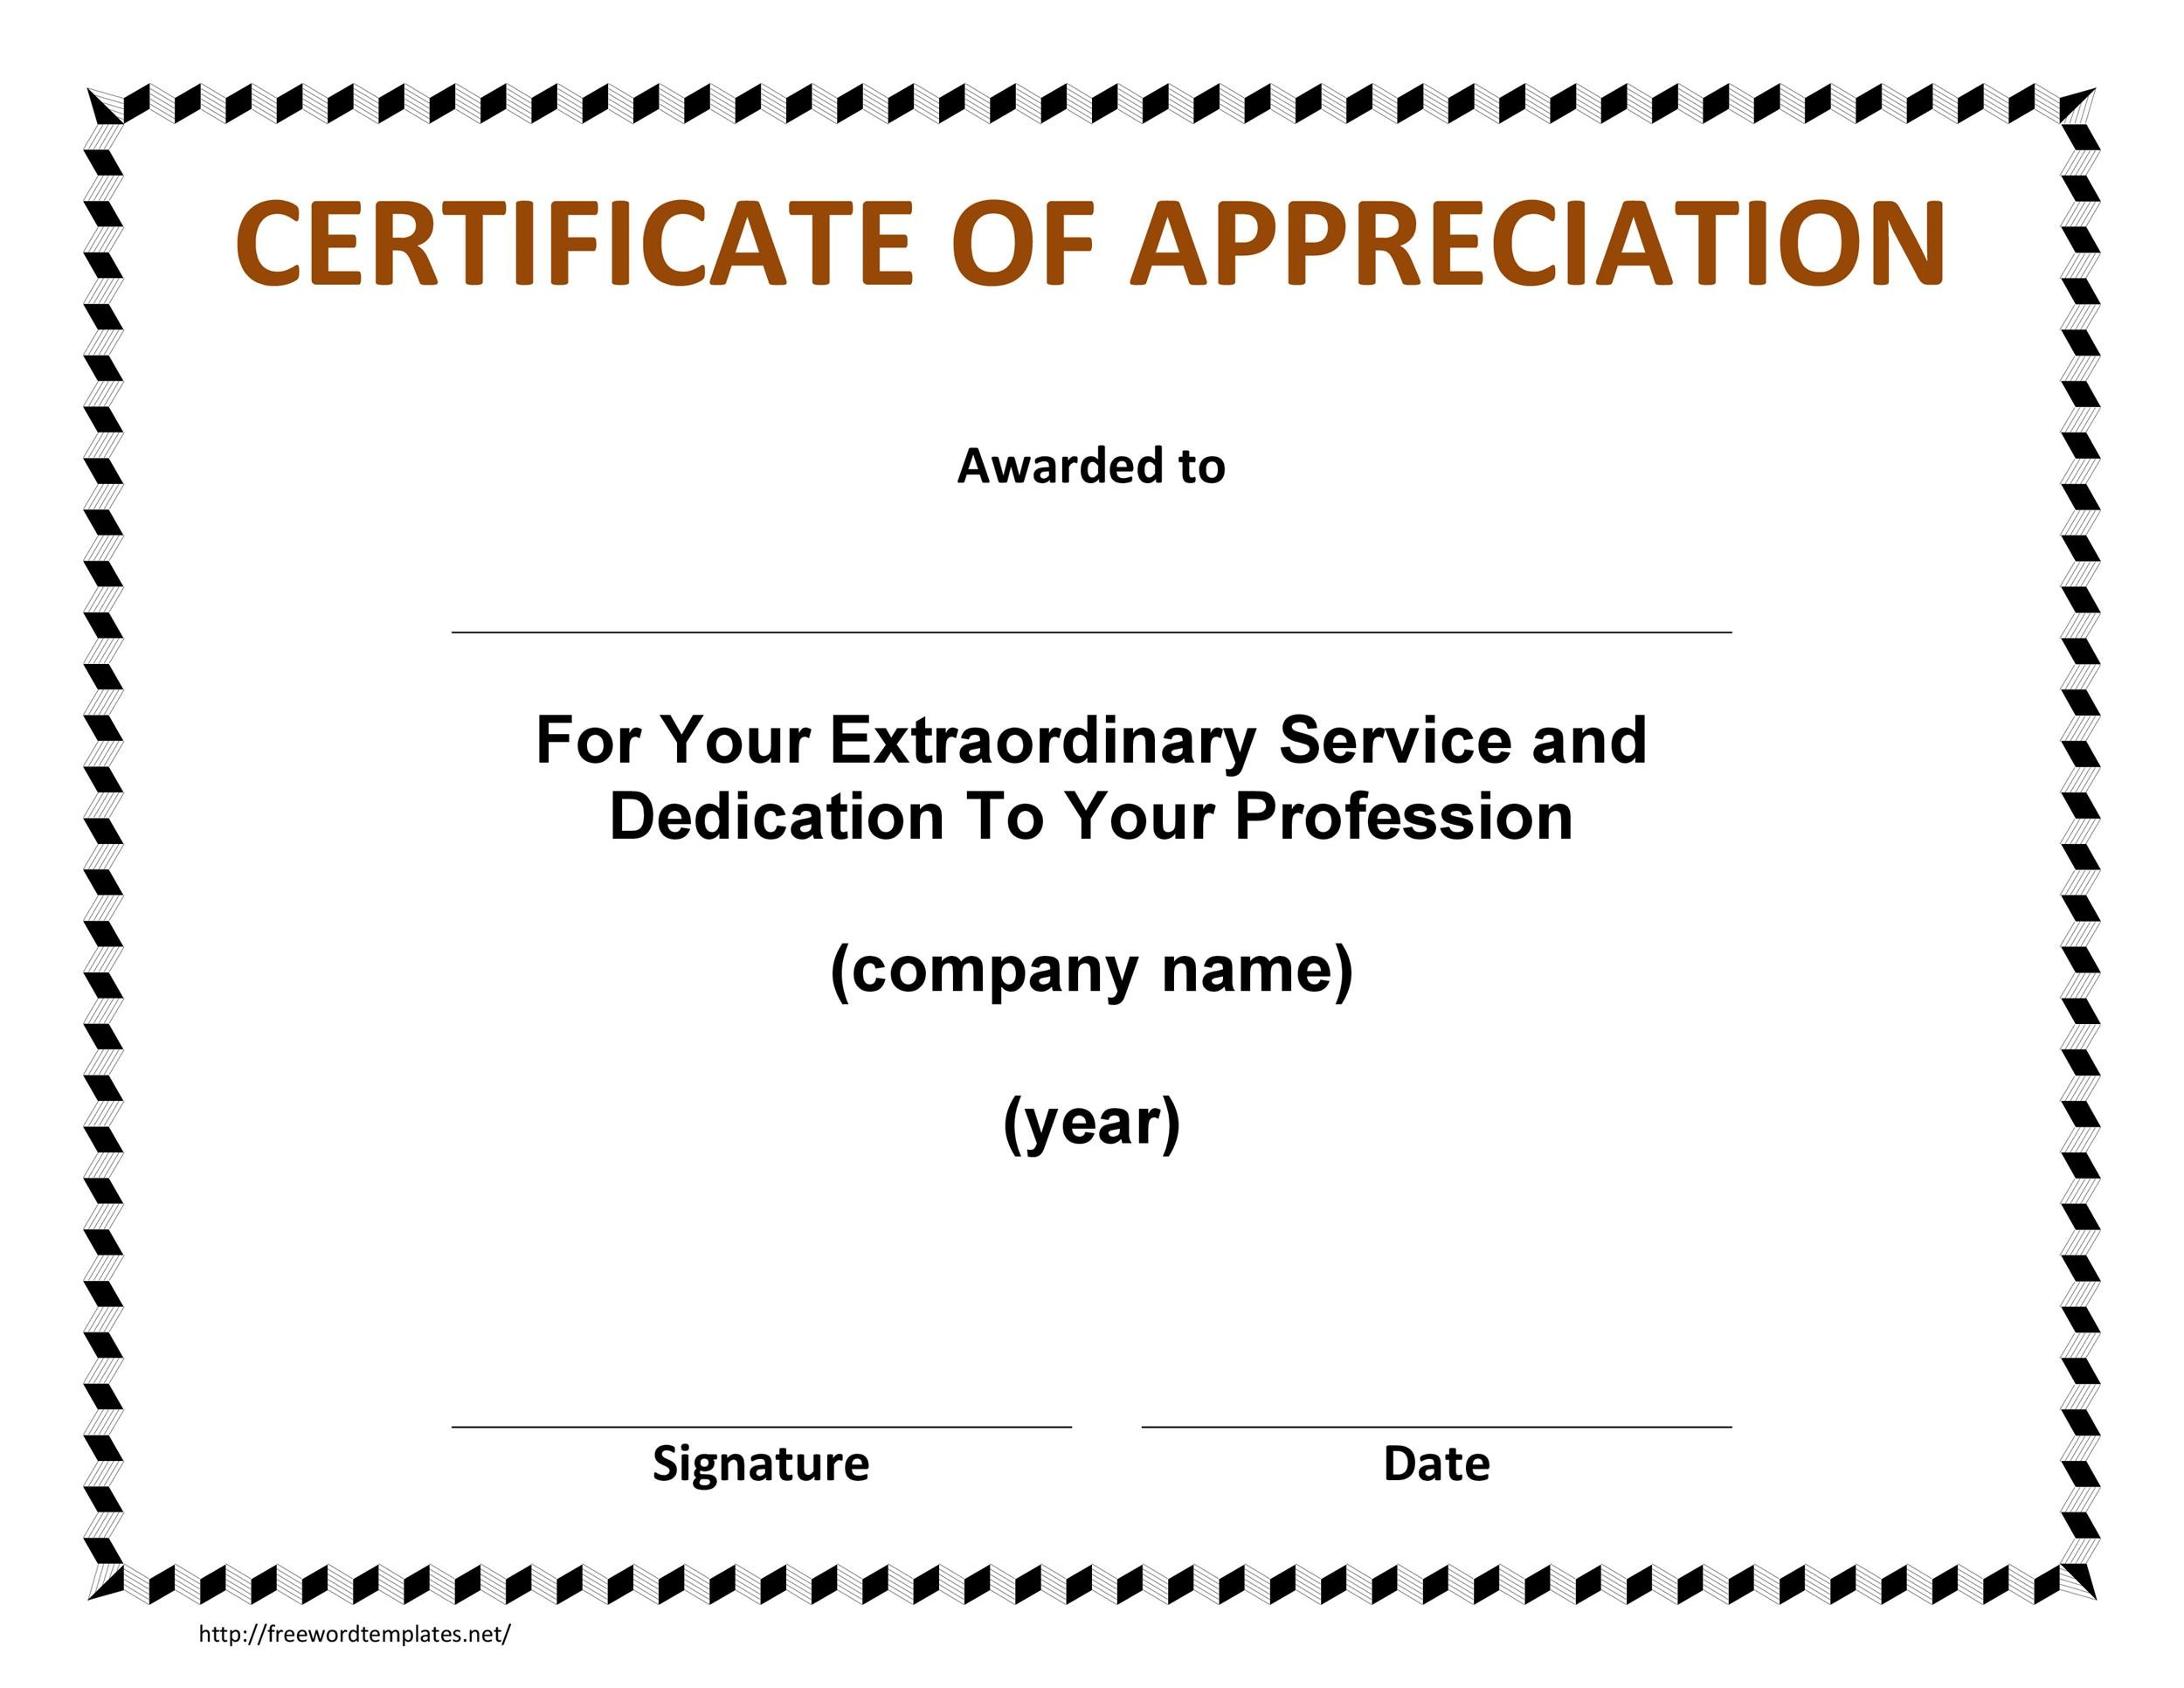 30 free certificate of appreciation templates and letters printable certificate of appreciation 04 yadclub Choice Image